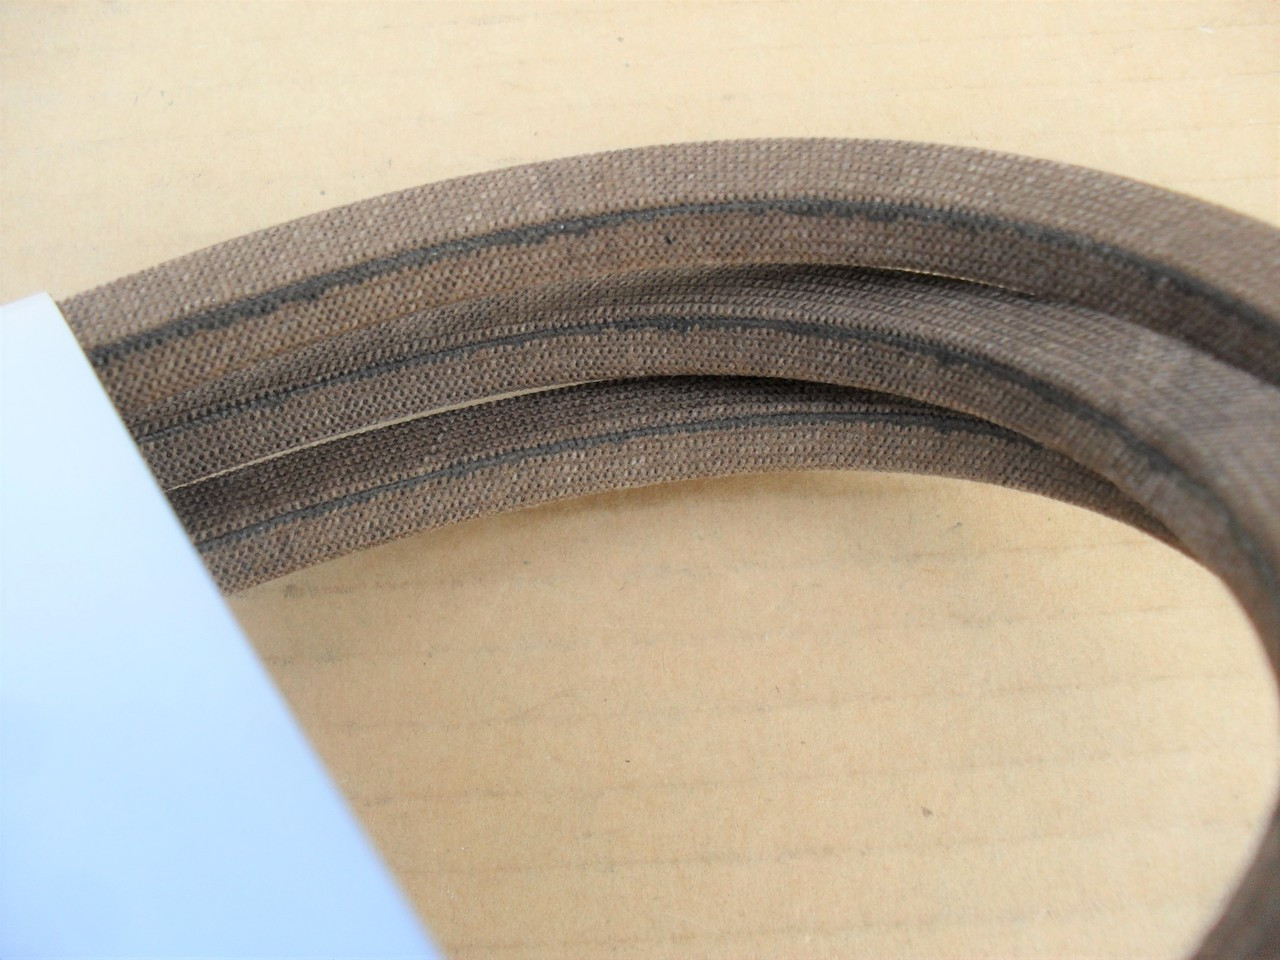 Drive Belt for Craftsman G8300, G8400, T8200, T8400, 754-05027, 754-05027A, 954-05027, 954-05027A, Made In USA